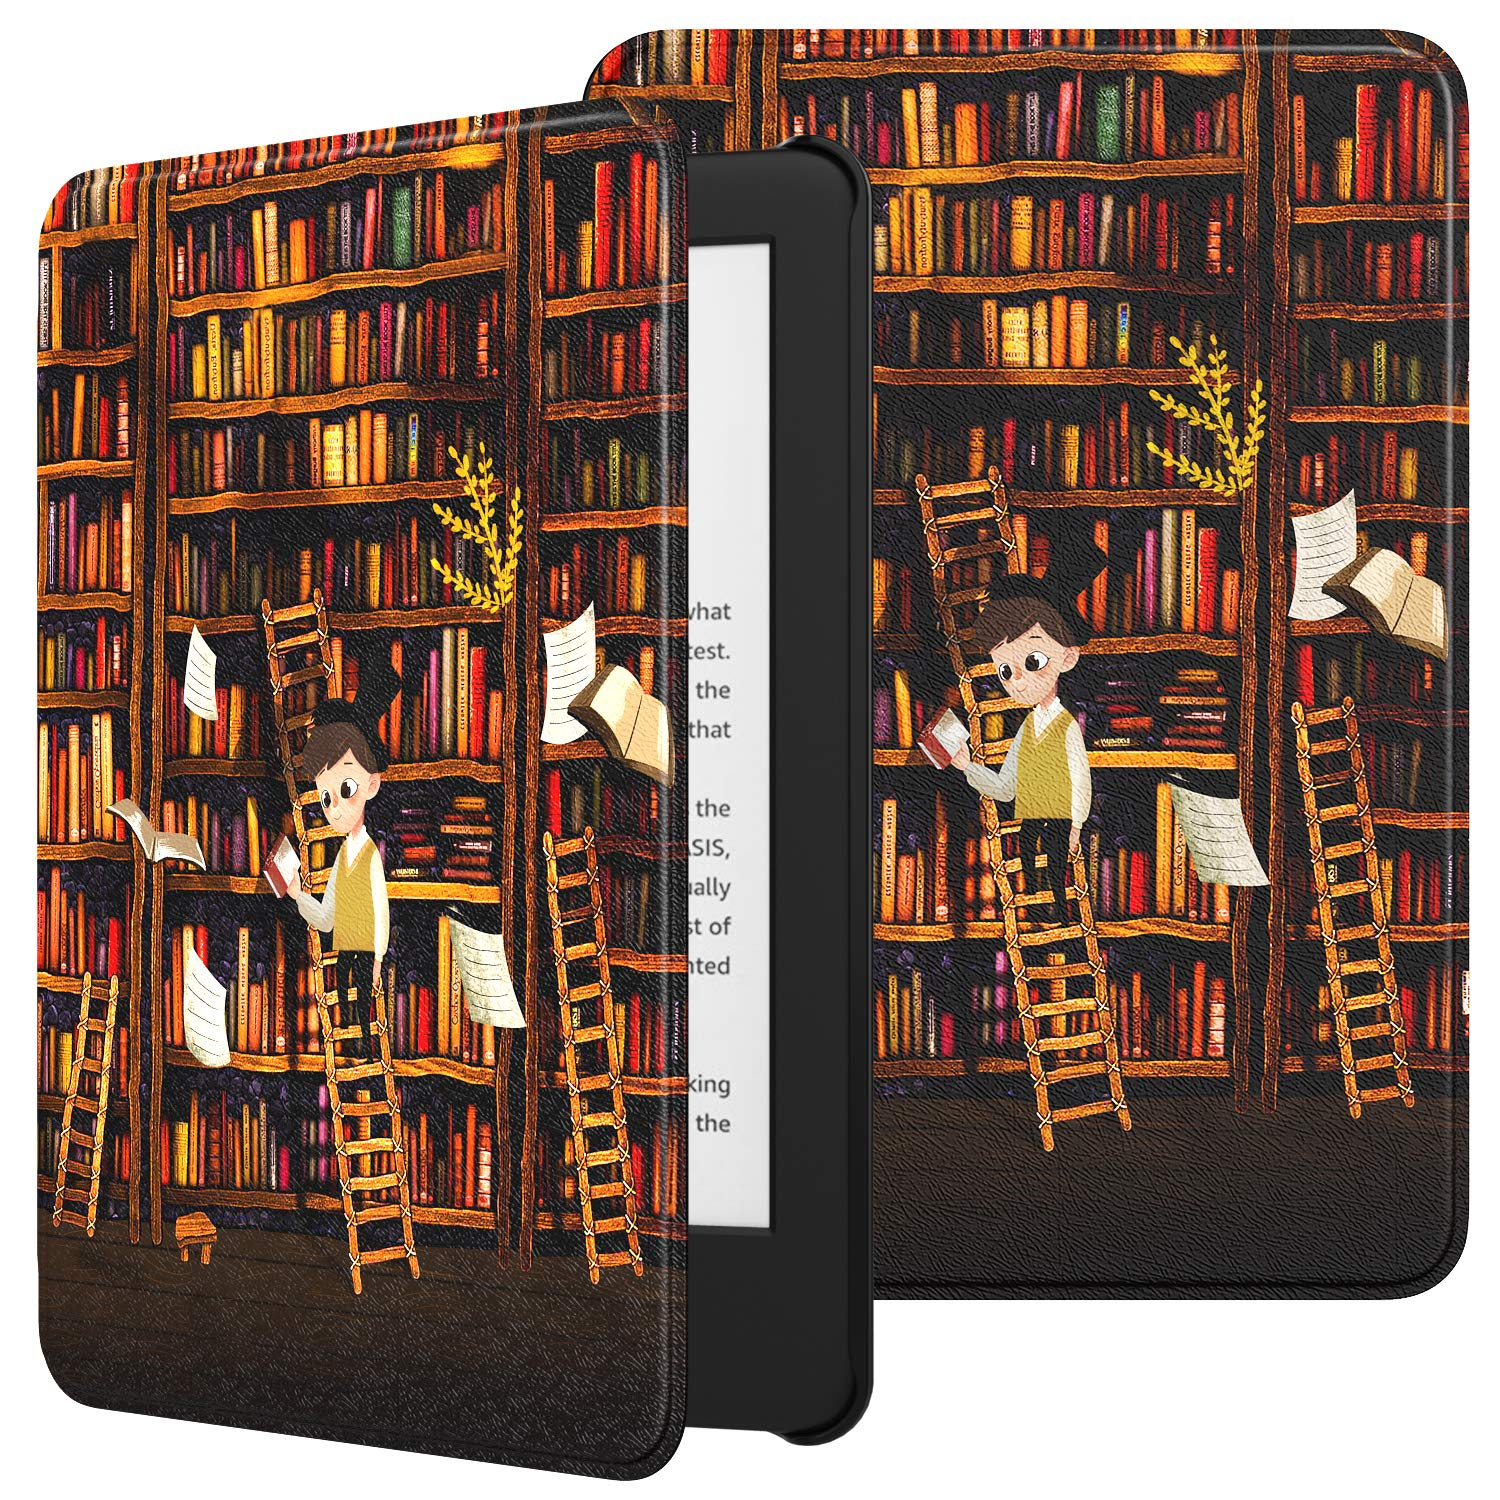 TiMOVO Case Compatible for All-New Kindle (10th Generation, 2019 Release), Premium Thin Lightweight Leather Cover with Auto Wake/Sleep Fits Amazon Kindle, Not Fit Kindle Paperwhite - Bookshelf